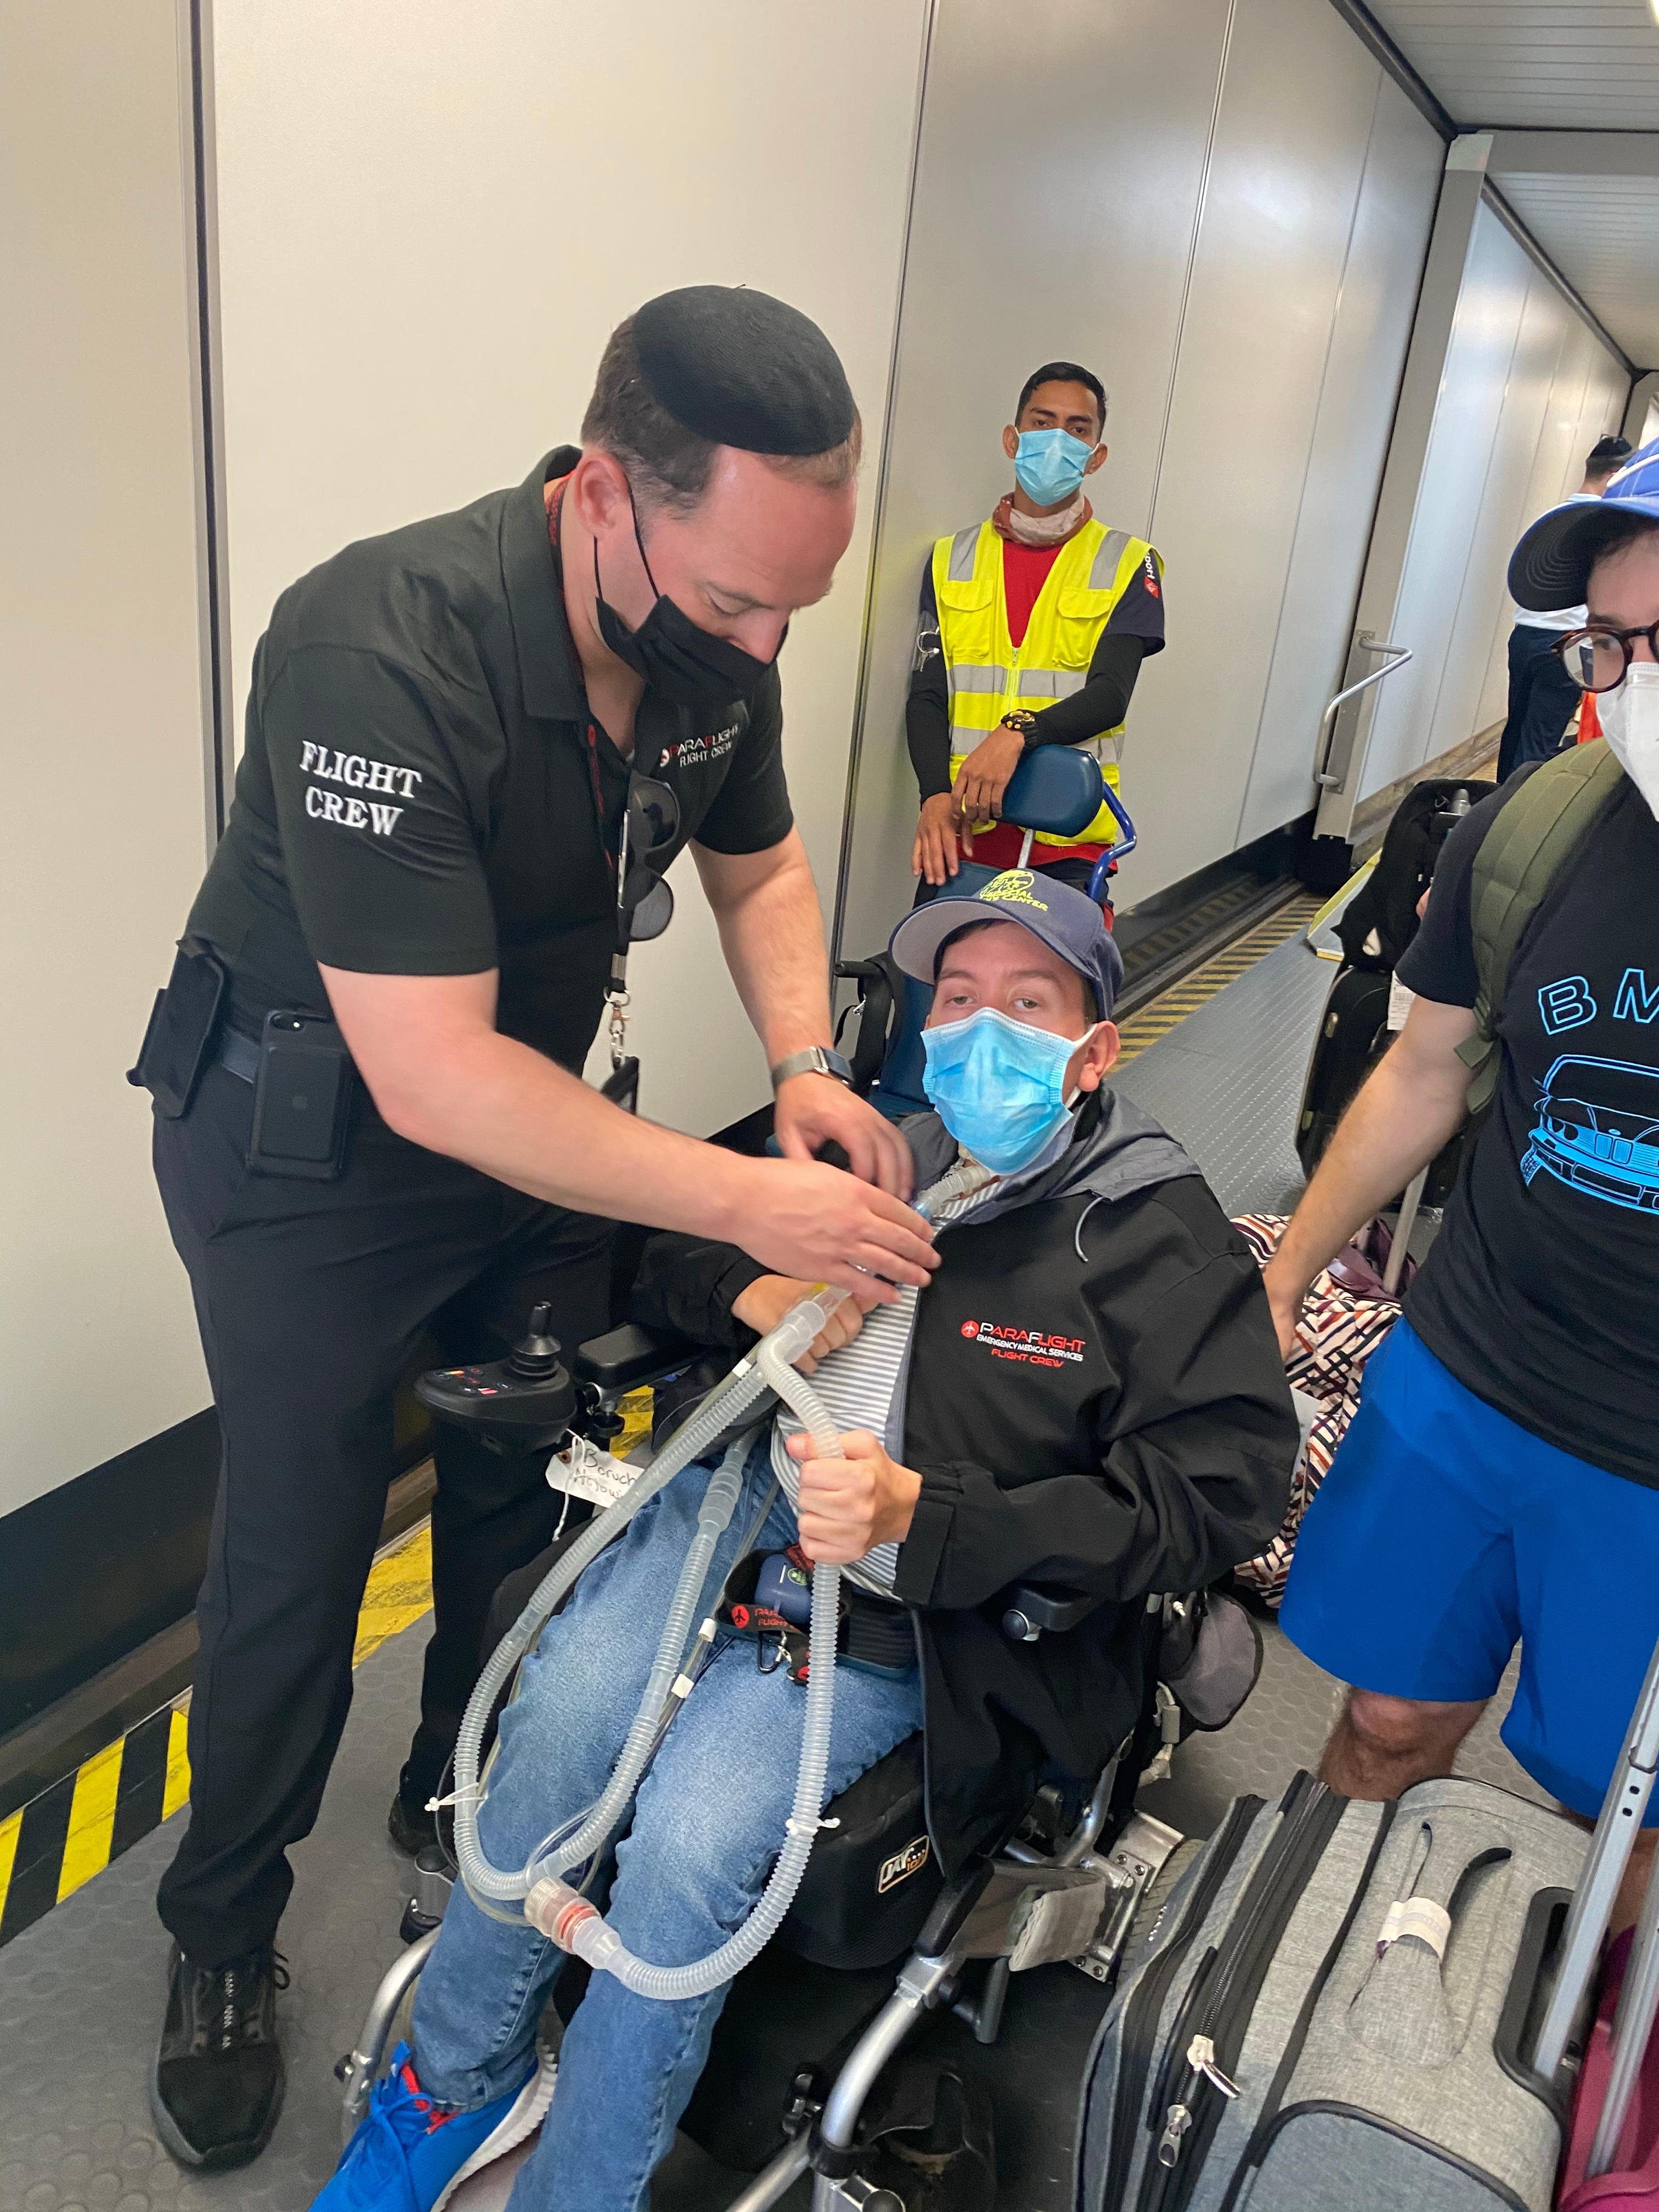 Man with disabilities on a jet bridge